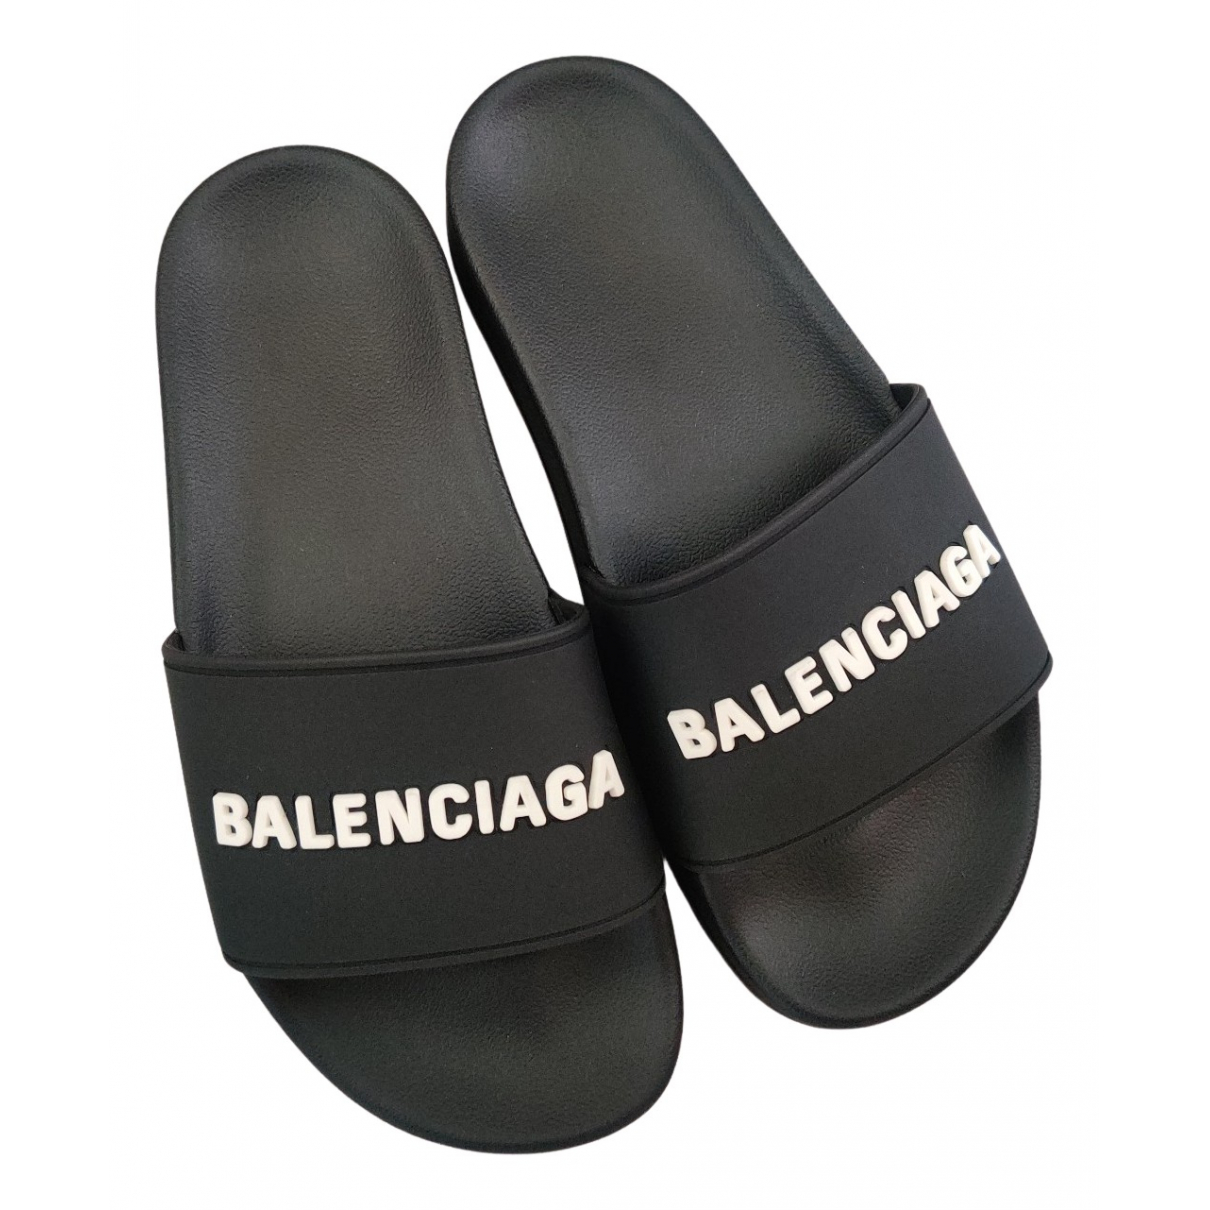 Balenciaga N Black Rubber Sandals for Women 36 EU